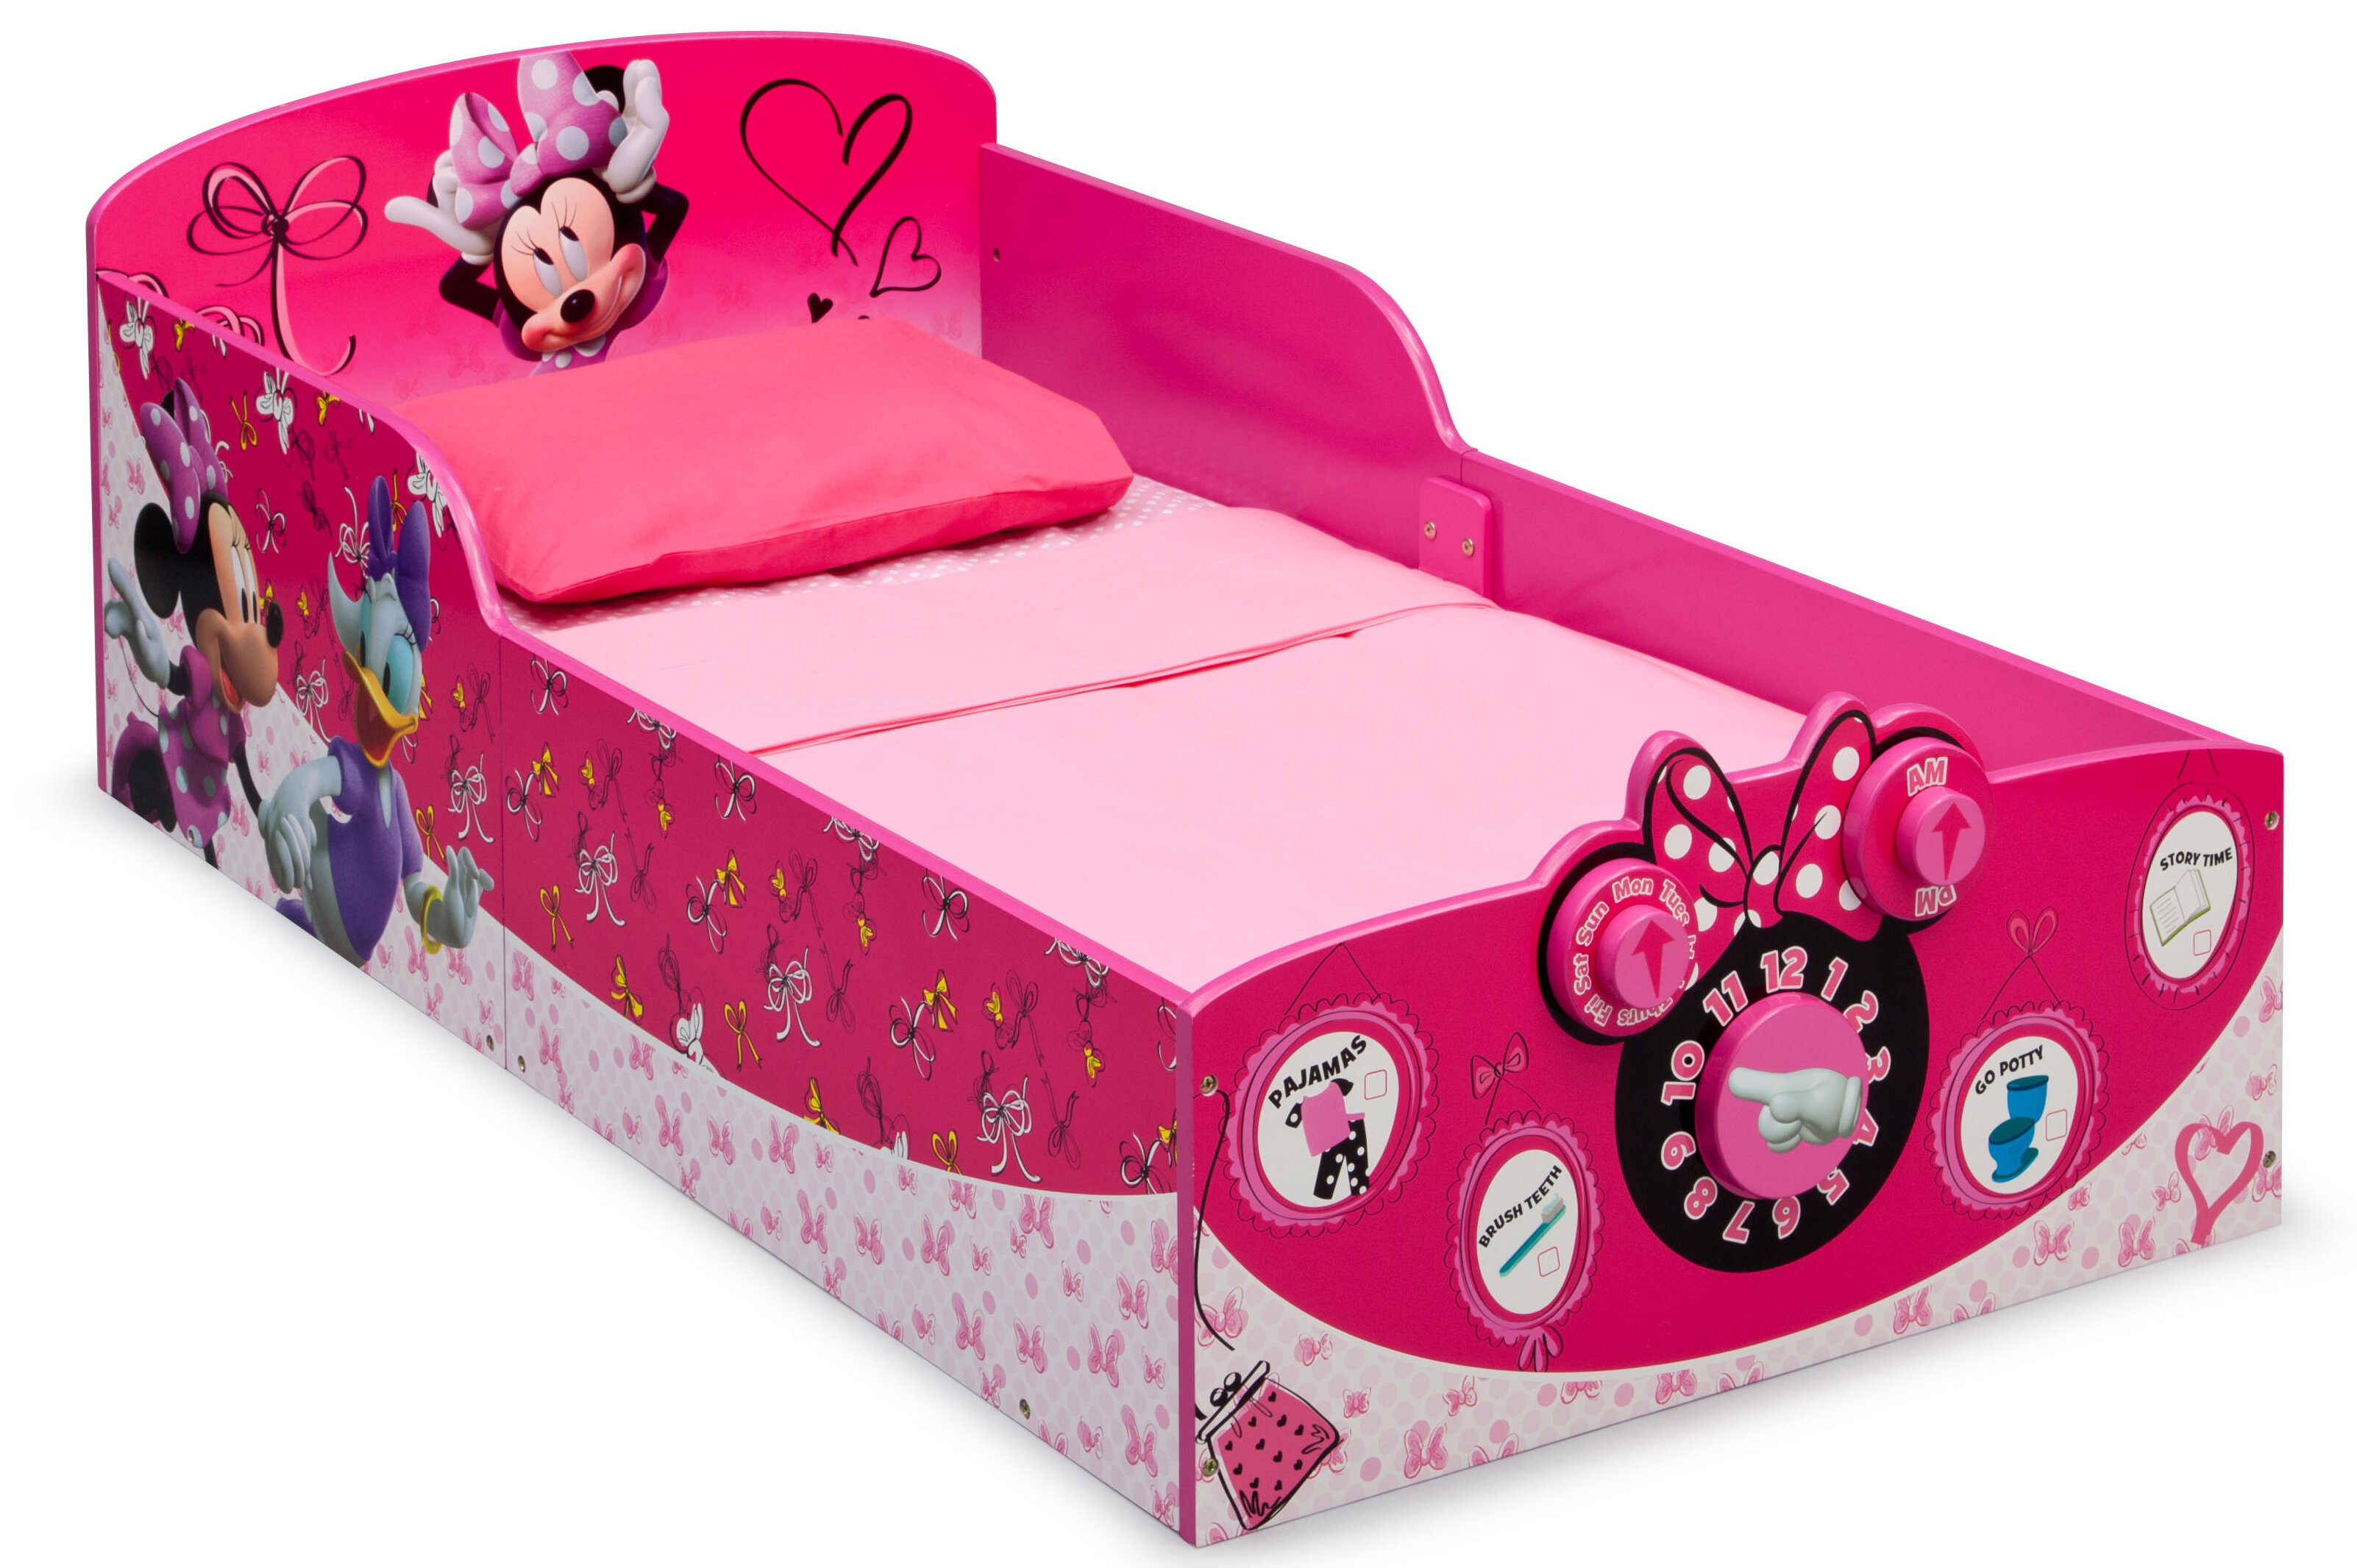 Beau Delta Children Minnie Mouse Convertible Toddler Bed U0026 Reviews | Wayfair